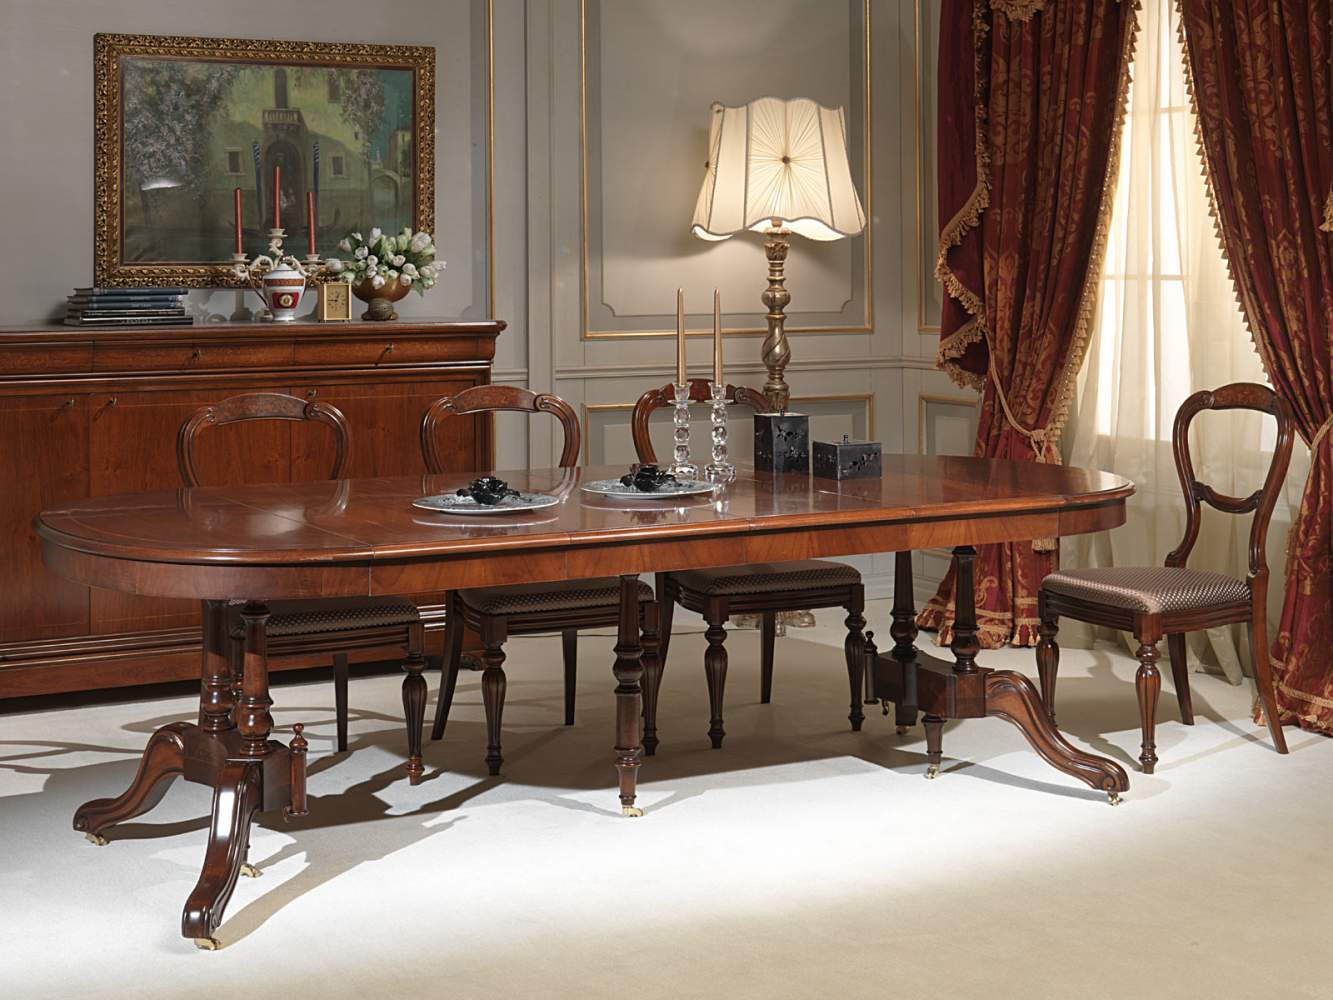 Classic table fully extended